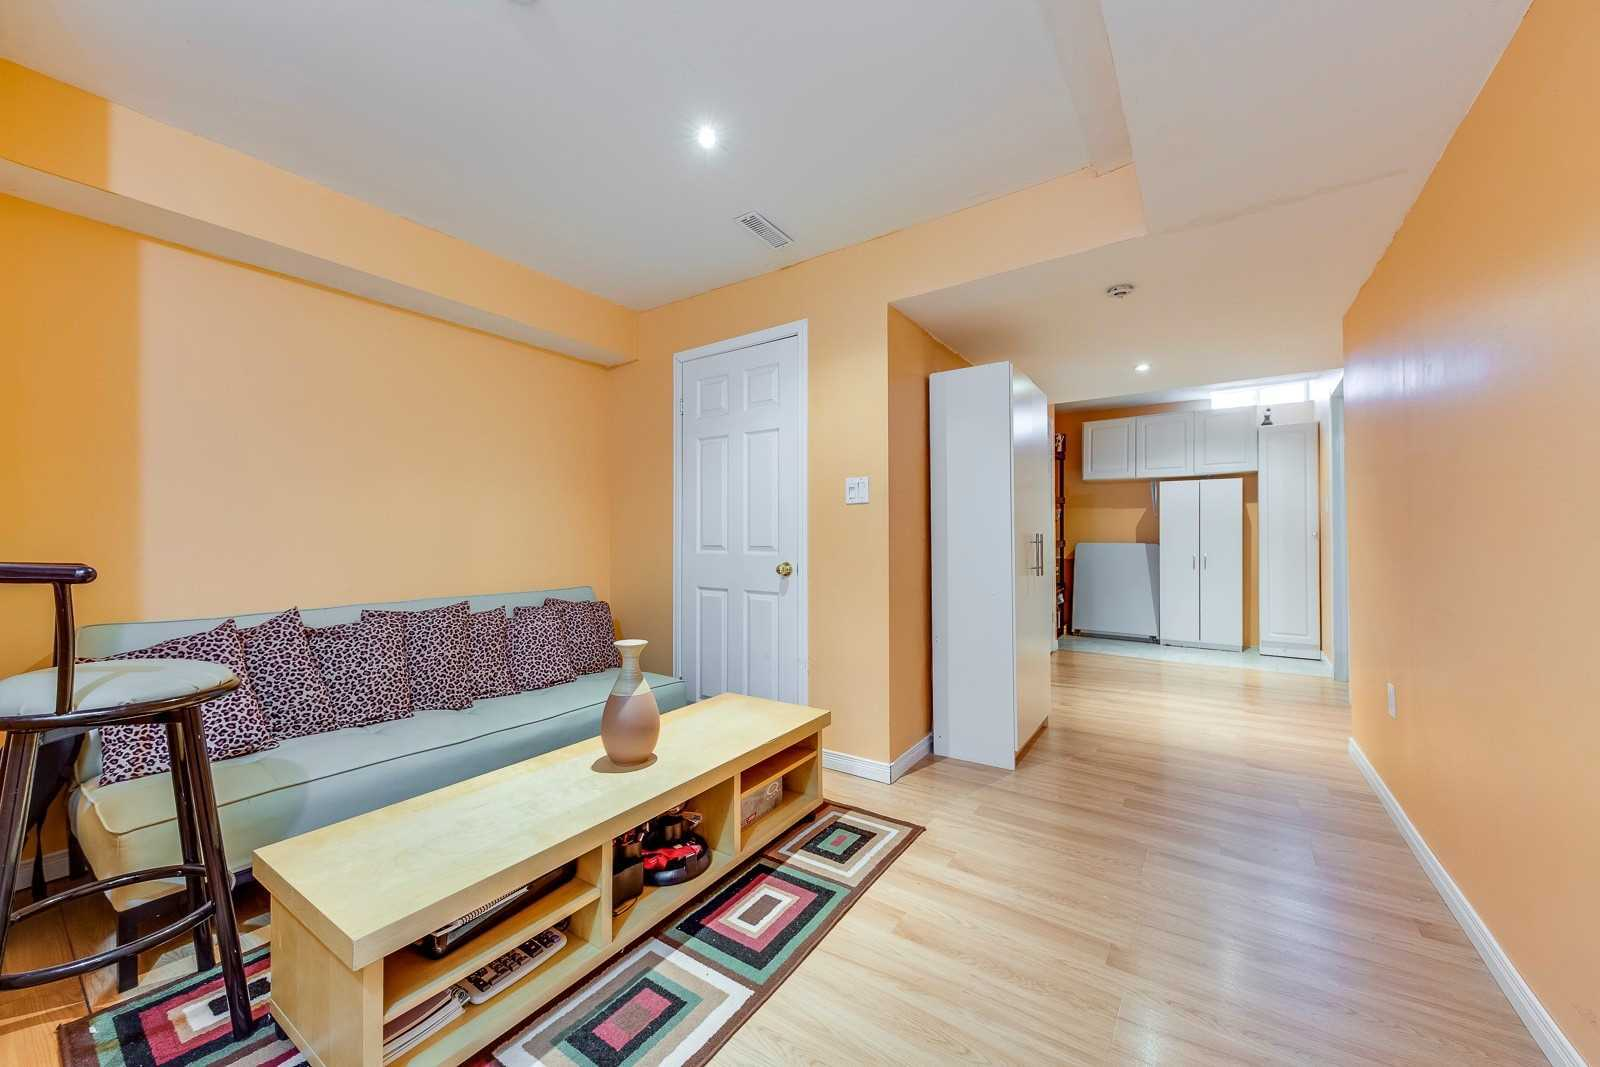 Image 6 of 20 showing inside of 3 Bedroom Att/Row/Twnhouse 2-Storey house for sale at 682 Edwards Ave, Milton L9T6B3